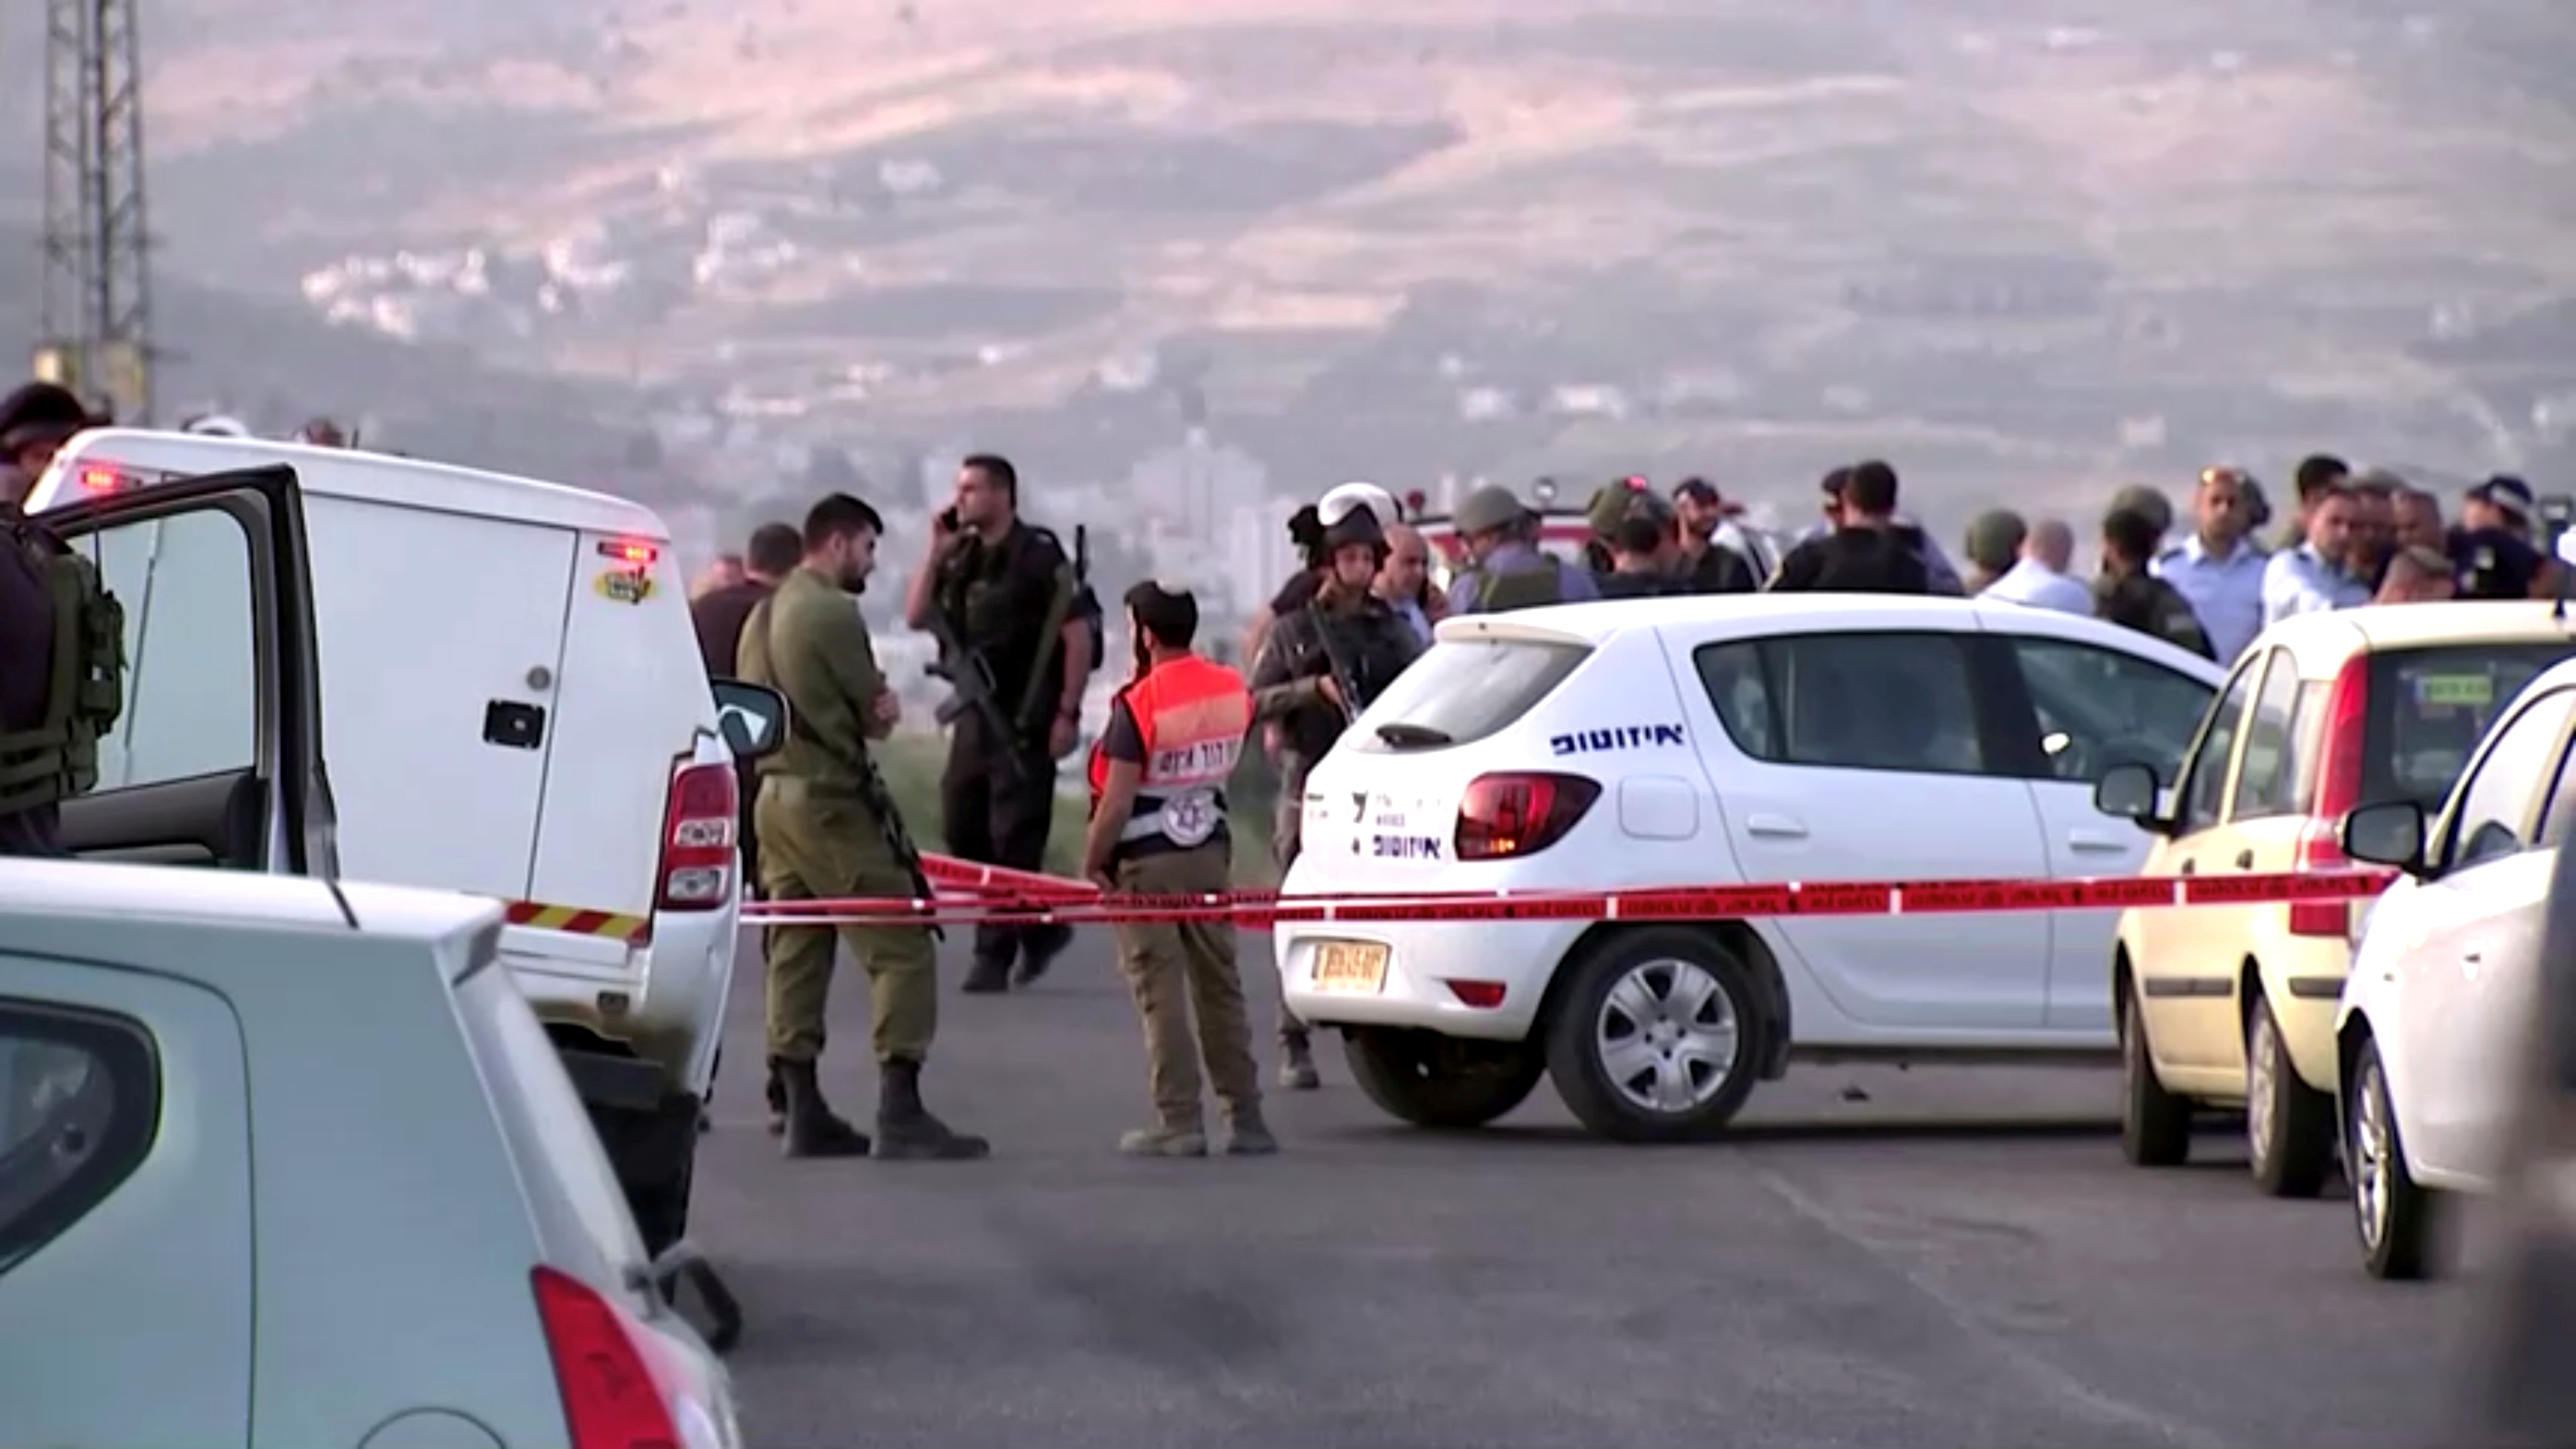 Members of Israeli forces gather at the scene of a shooting incident in the Israeli-occupied West Bank May 2, 2021, in this still image taken from a video. REUTERS/REUTERS TV/